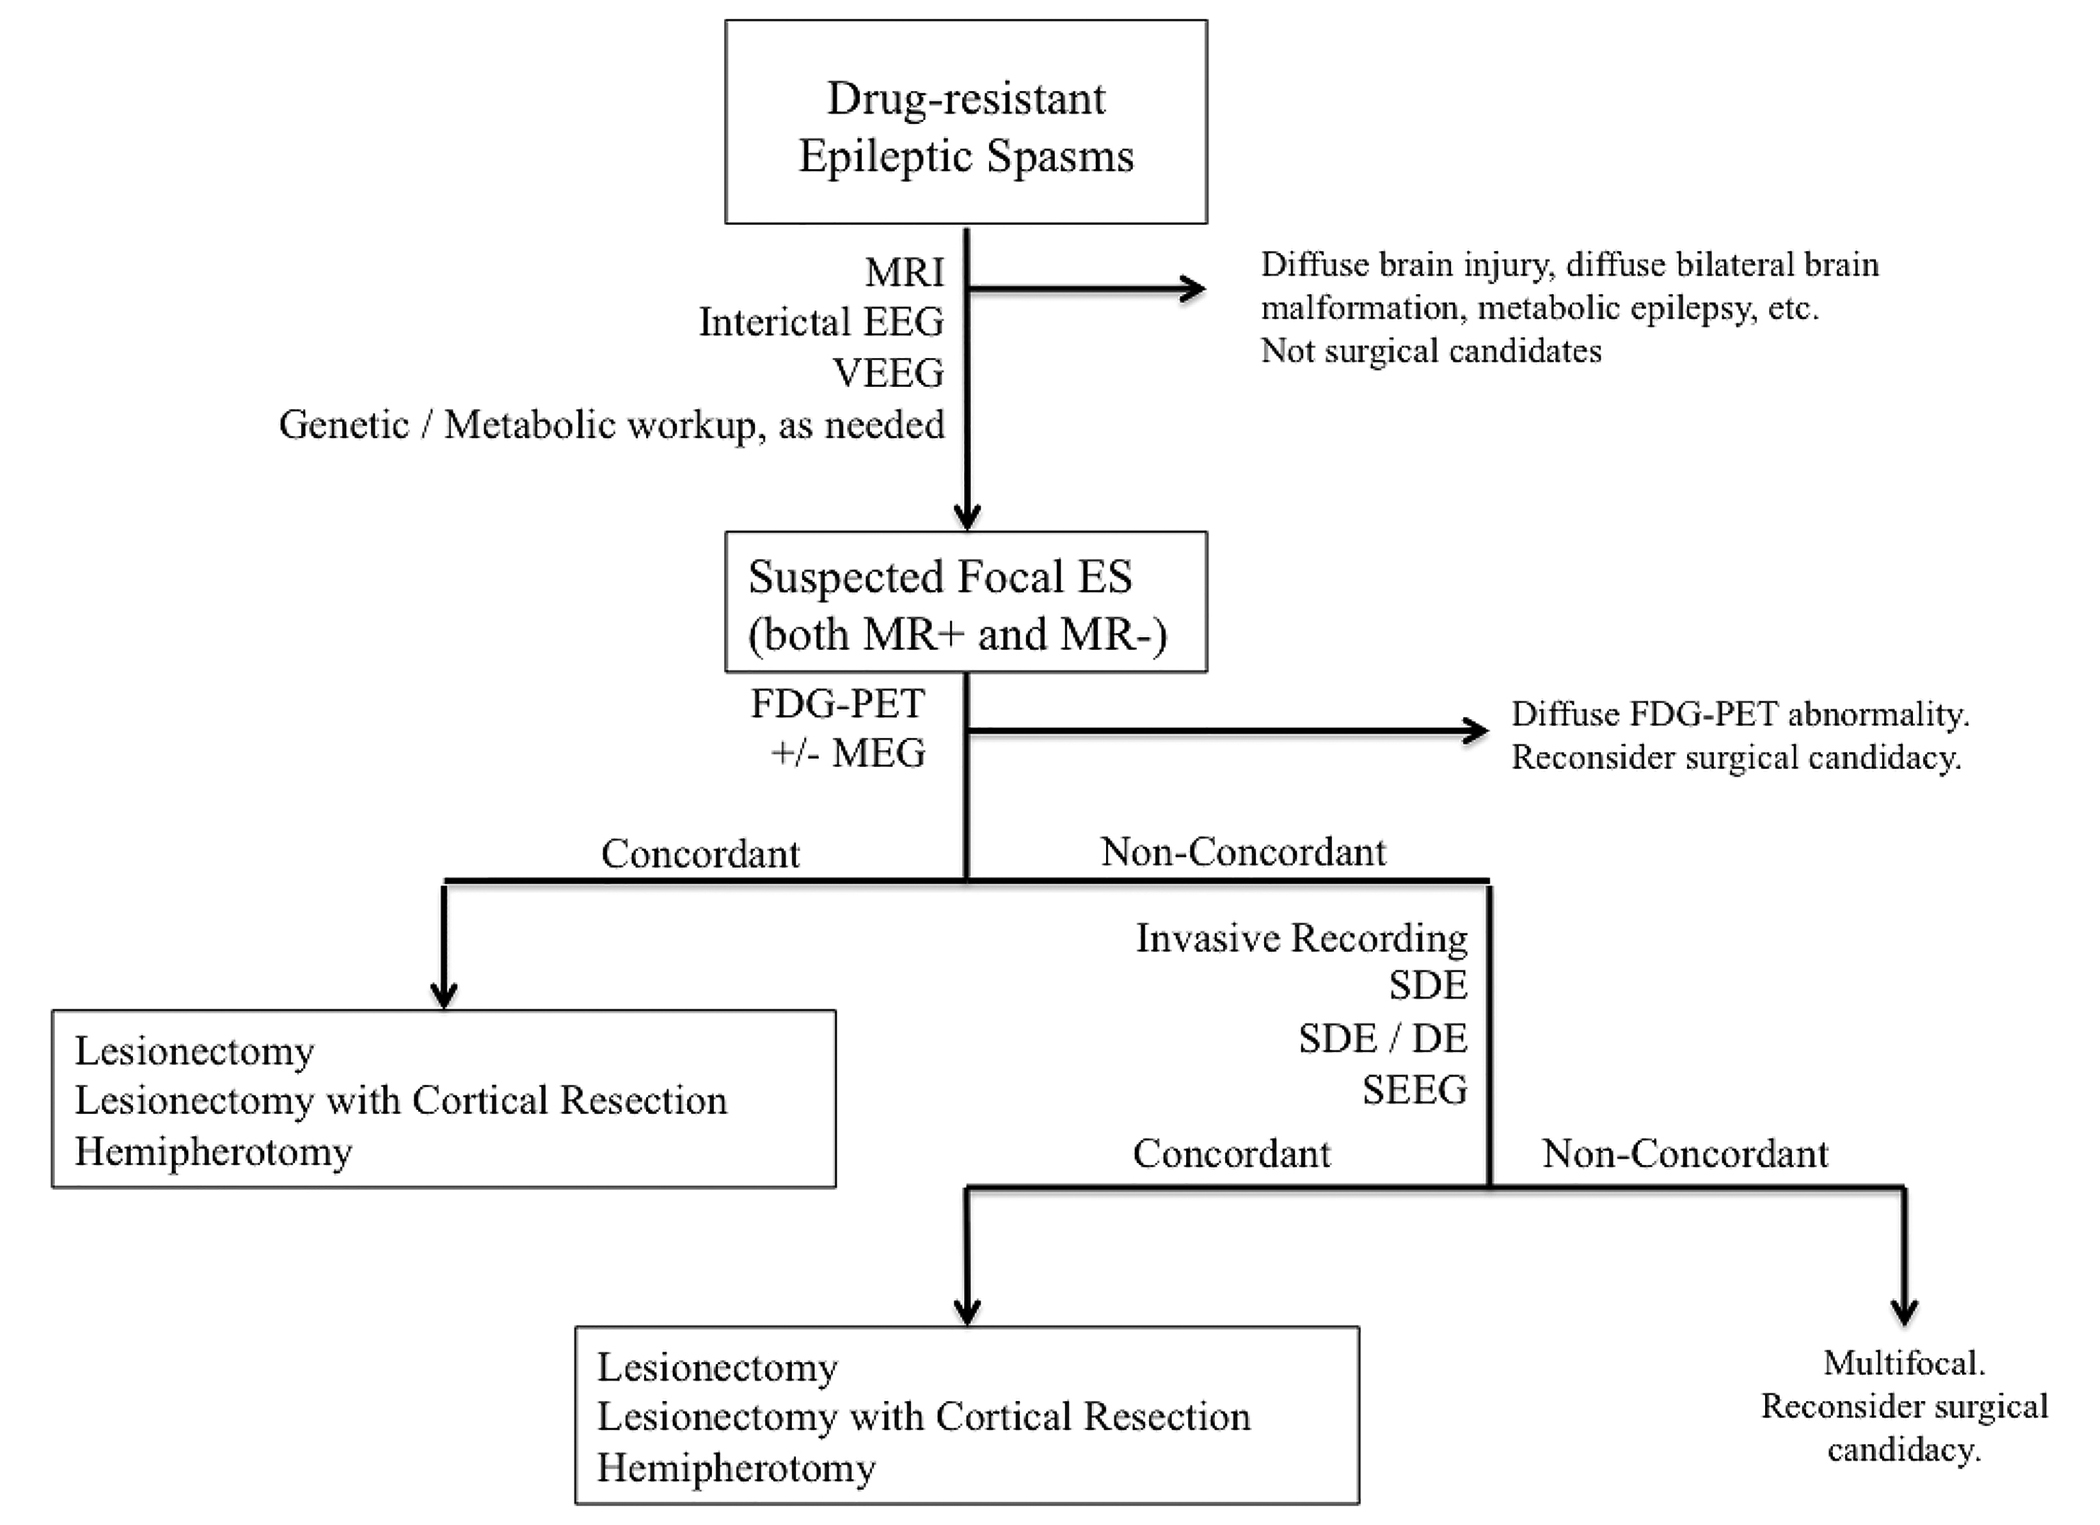 Multimodal localization and surgery for epileptic spasms of